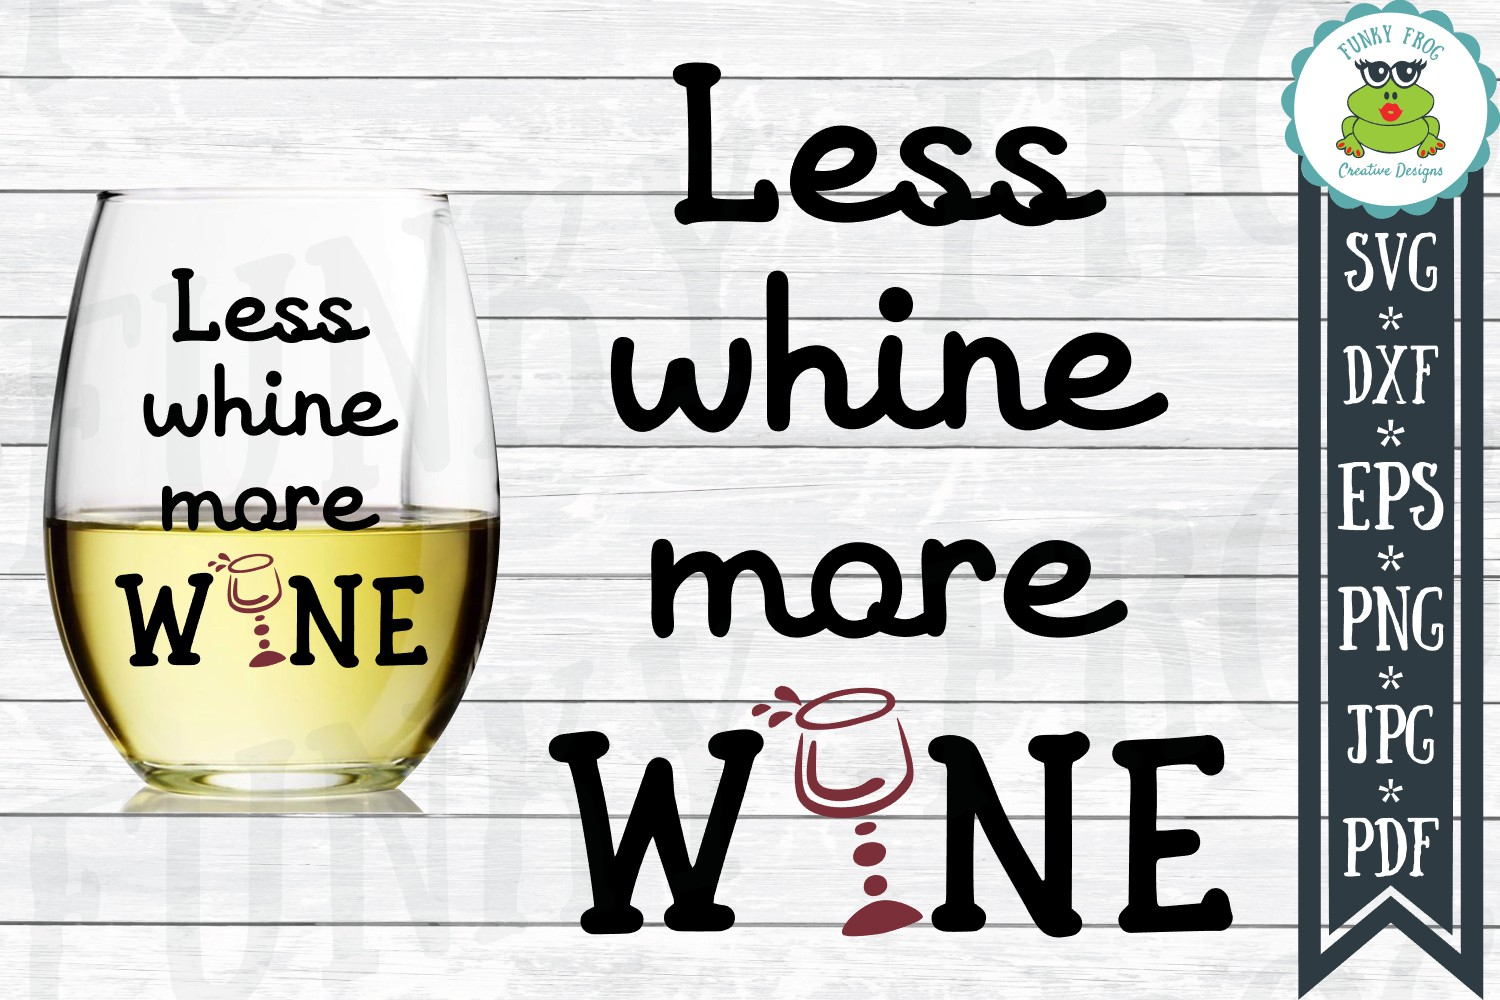 Download Free Less Whine More Wine Graphic By Funkyfrogcreativedesigns for Cricut Explore, Silhouette and other cutting machines.